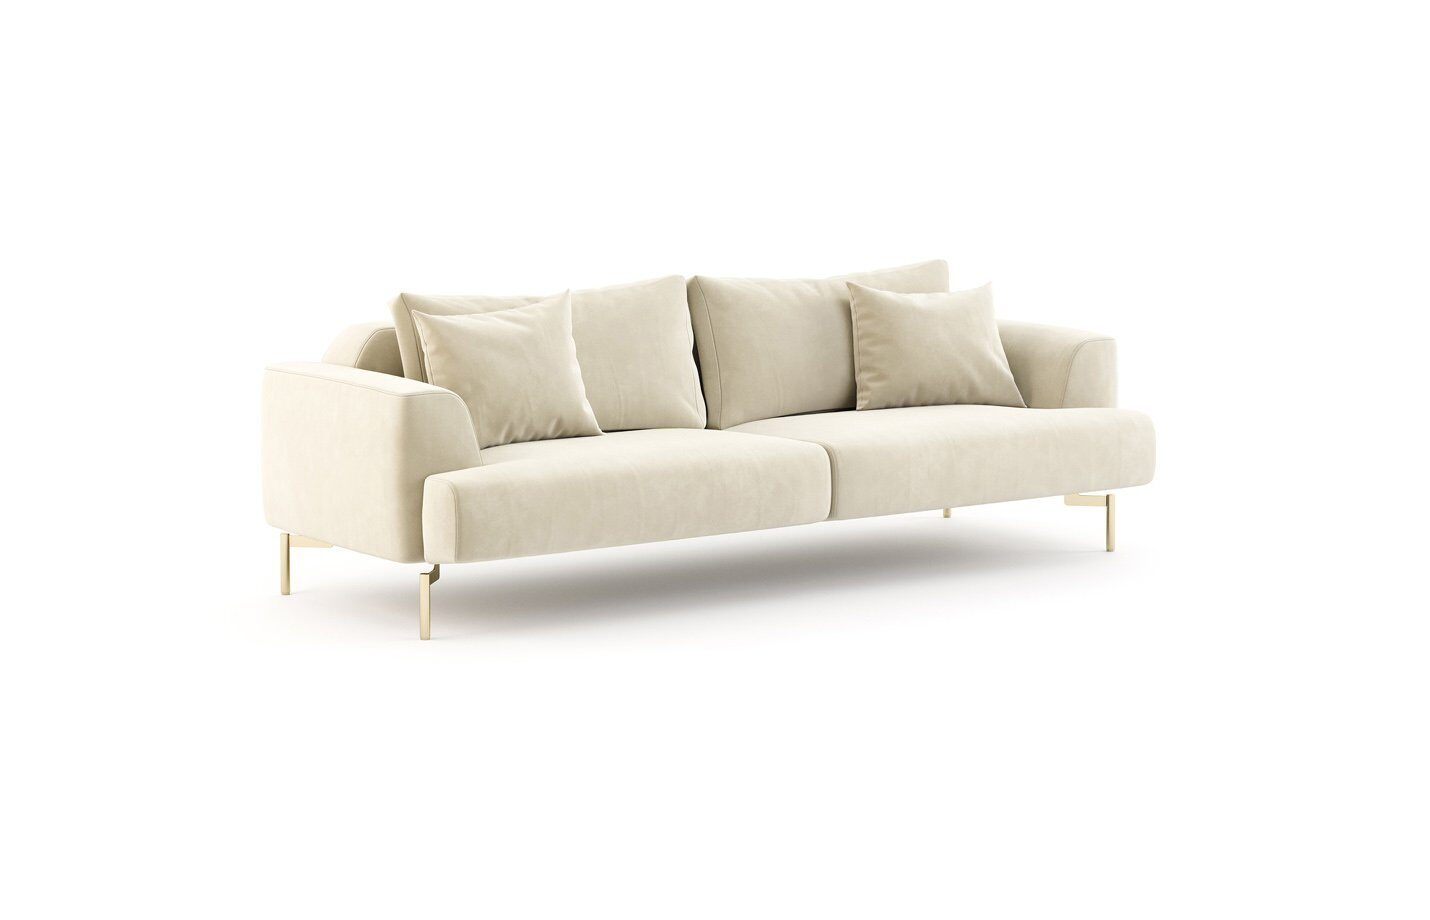 Miyana-Sofa-by-fabiia-furniture-signature-2